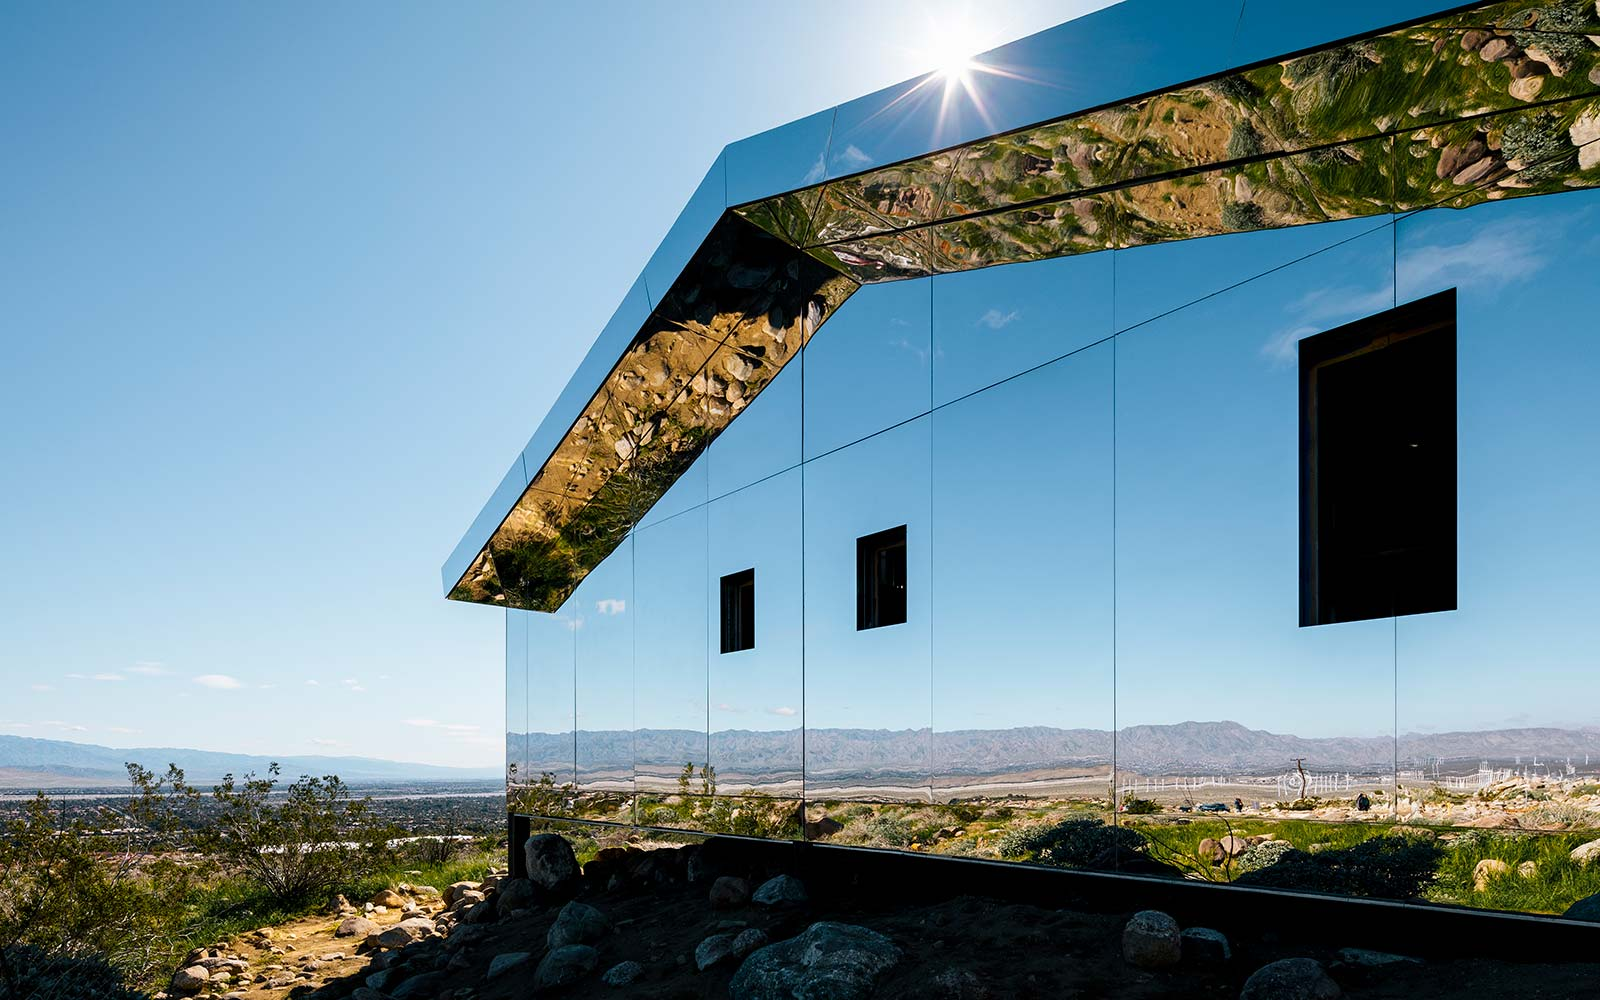 This Mirrored House Blends Right Into the Desert